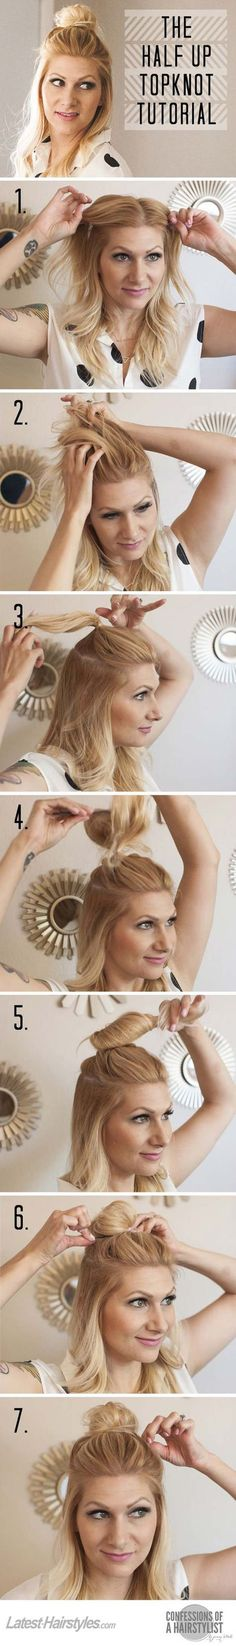 Love finding new ways to style your hair? How about cool easy hairstyles that are quick and pretty much fool proof? We've all seen the super cool hair tutorials on Pinterest, but come on people, some of these take forever! (if you can actually even pull it off) Who has time for hairstying tutorials like … -- Click on the image for additional details.